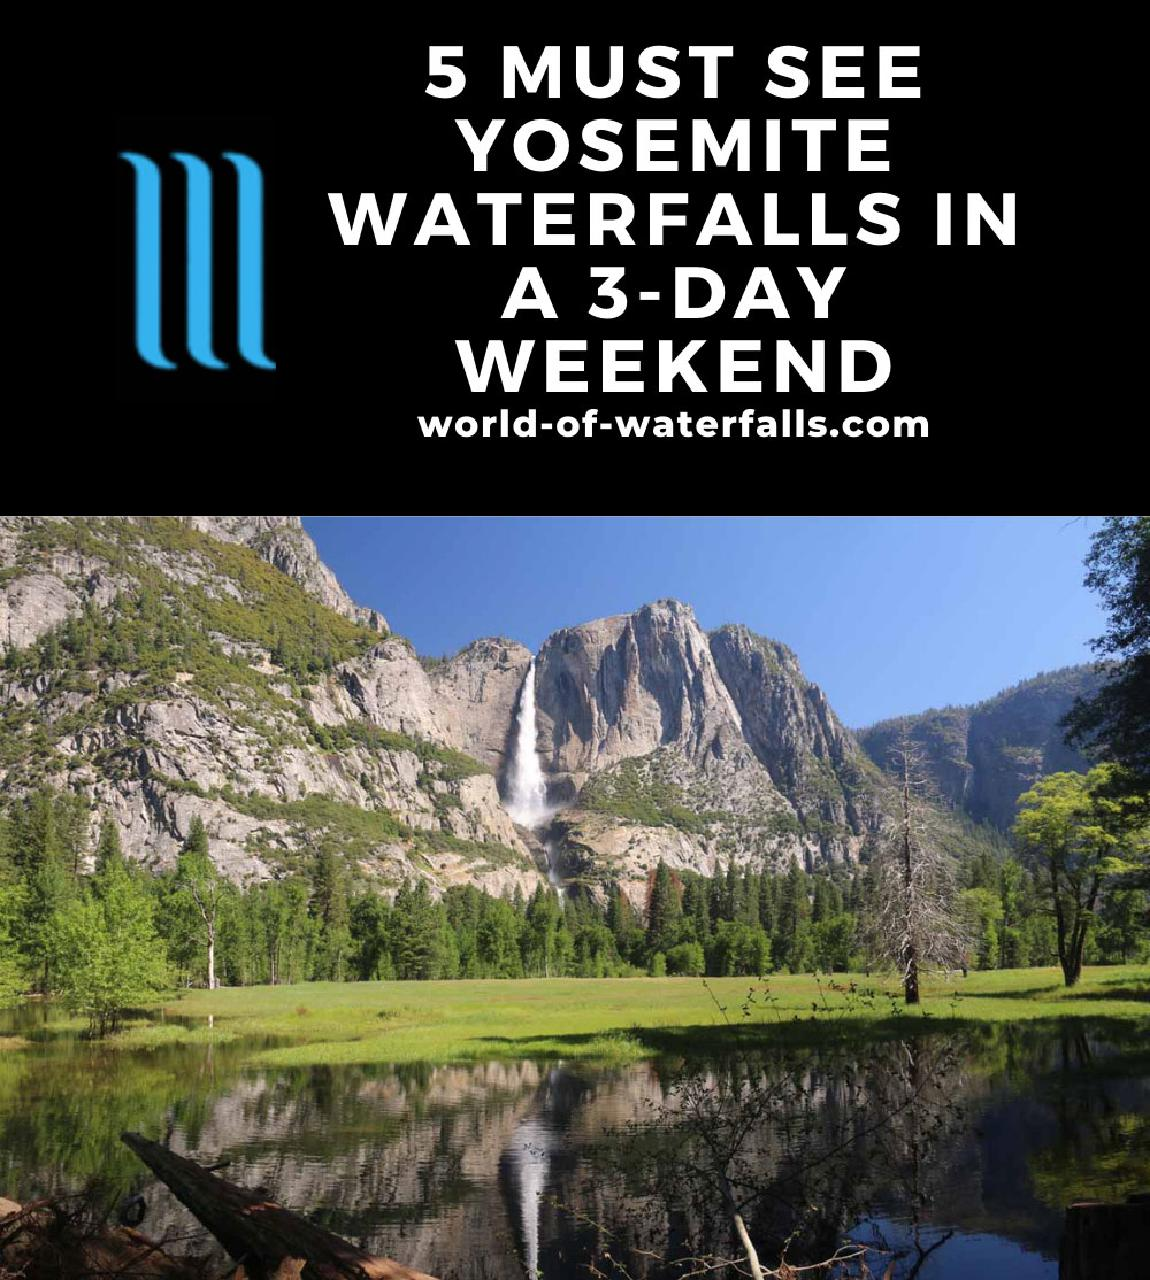 5 Must See Yosemite Waterfalls in a 3-Day Weekend